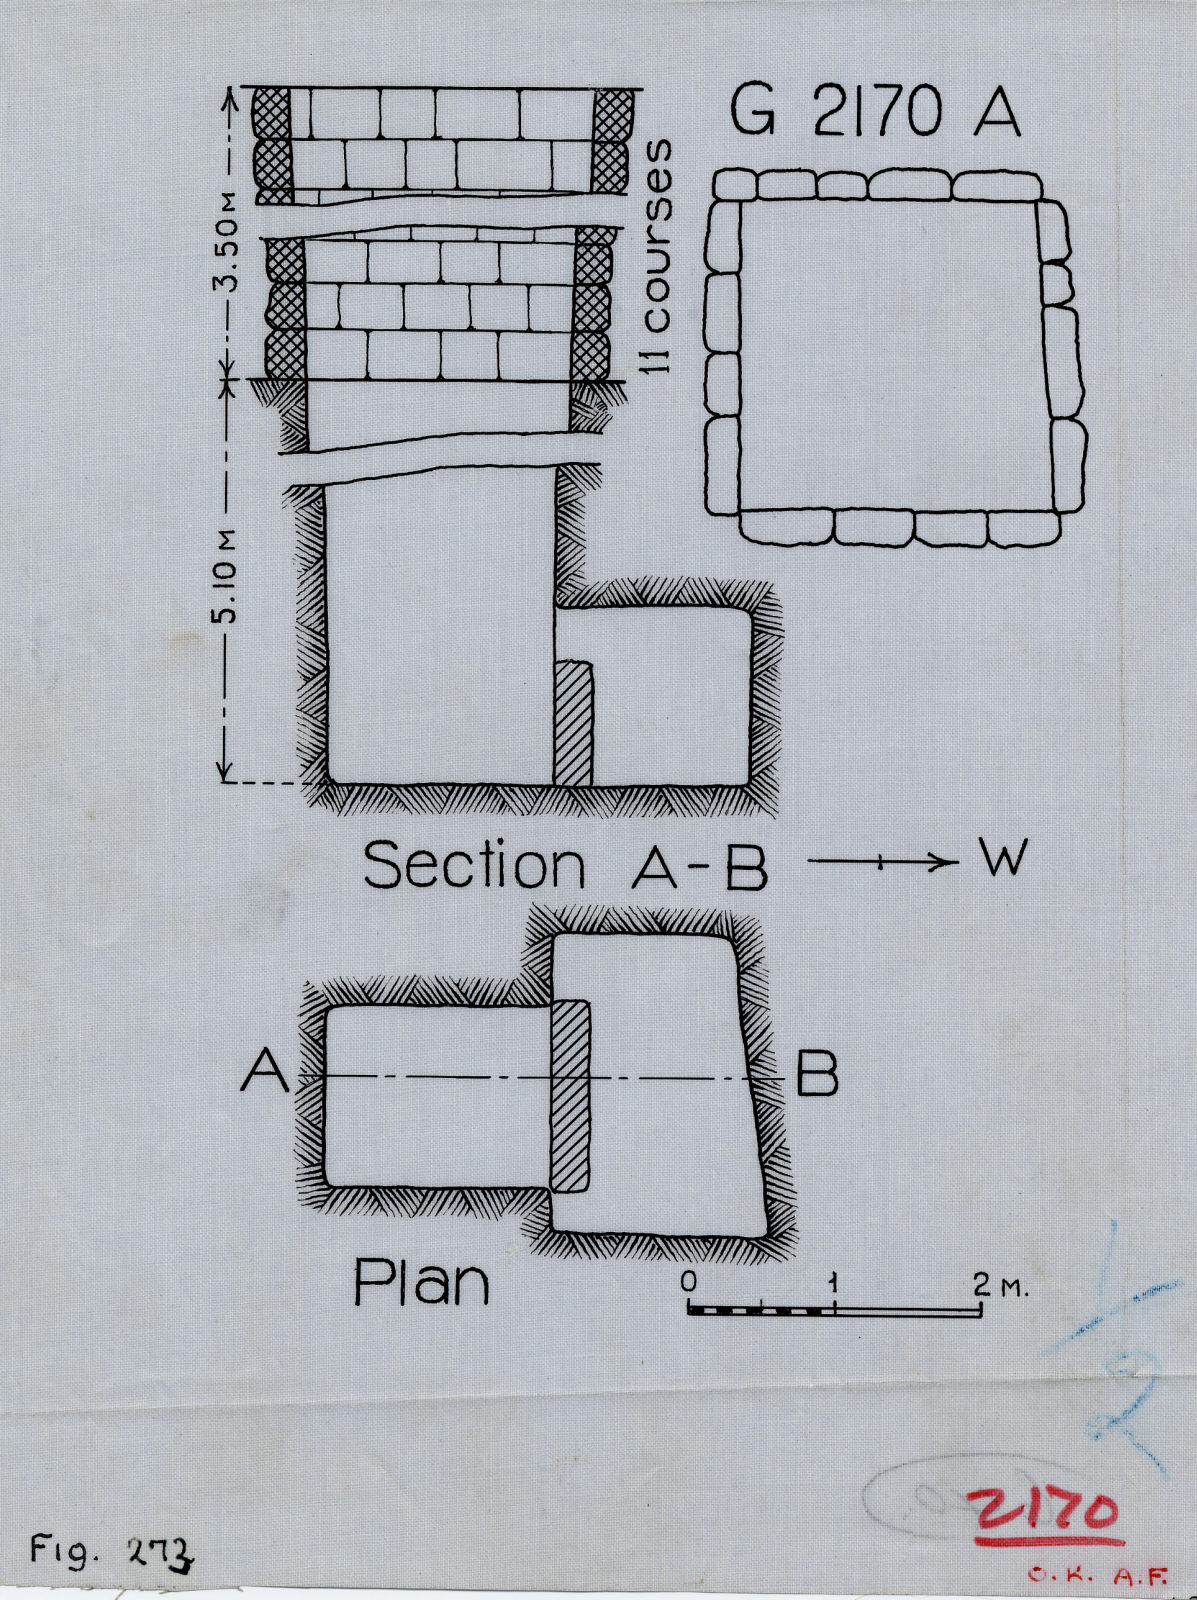 Maps and plans: G 2170, Shaft A